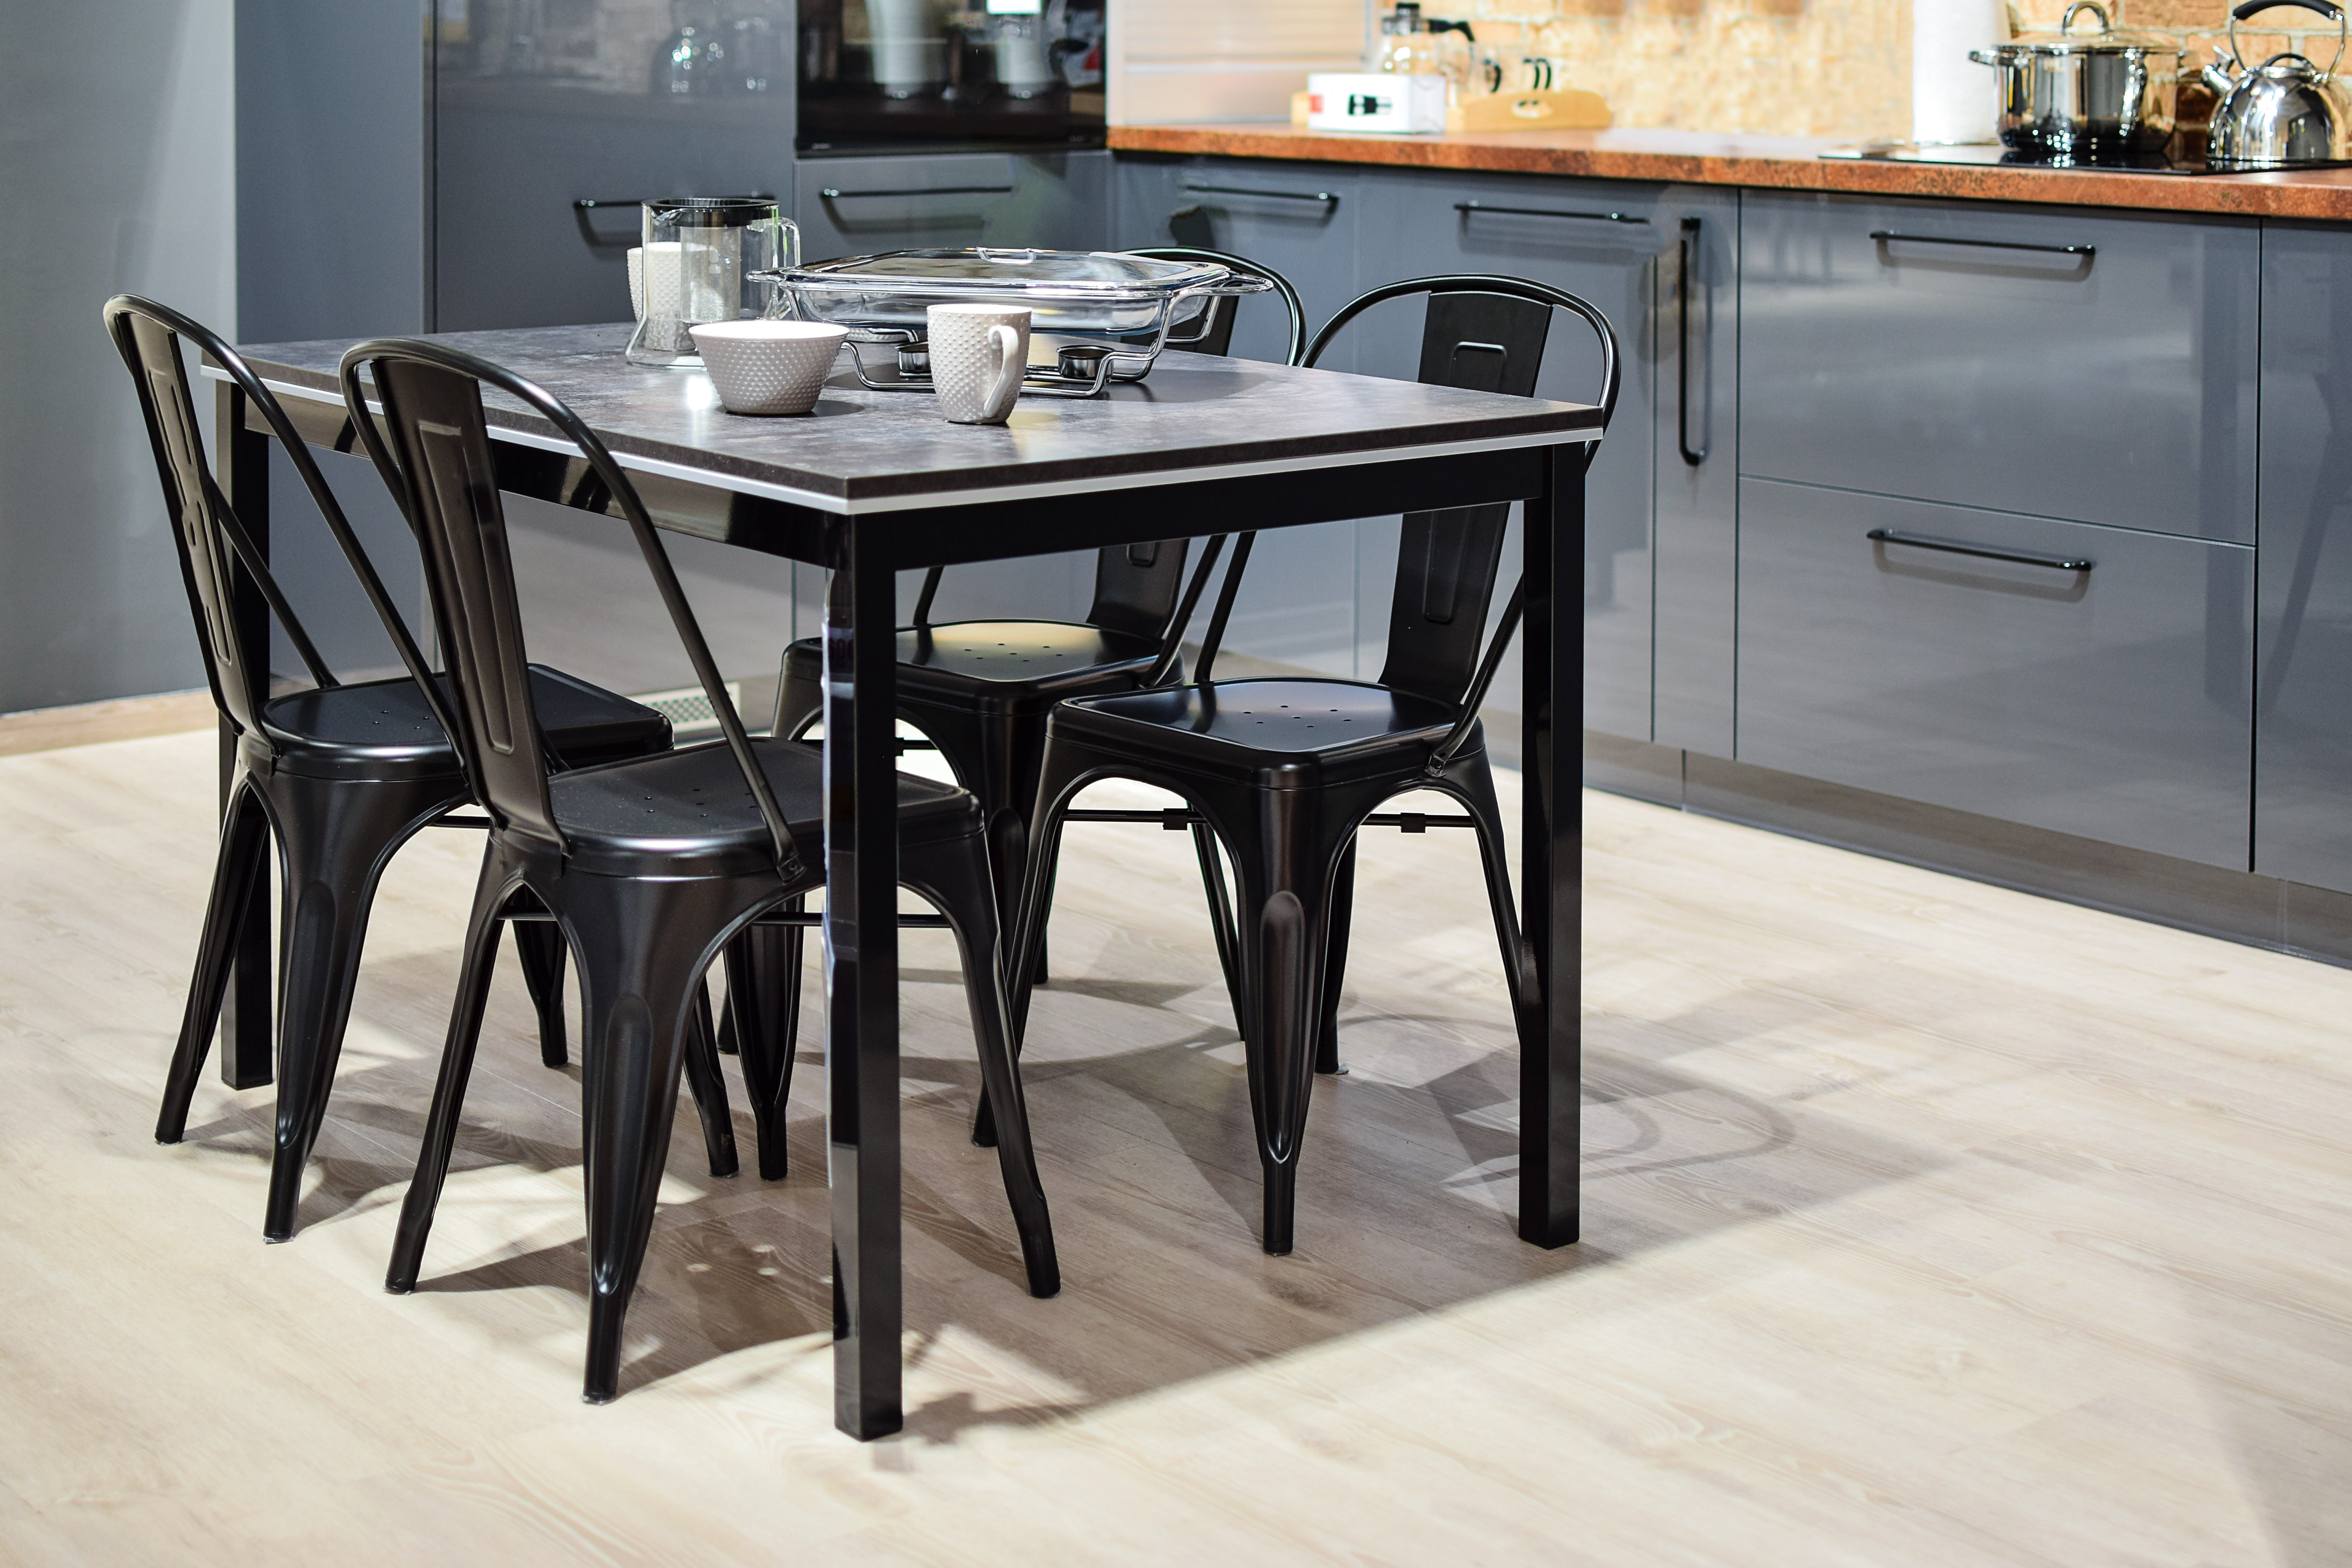 White Ceramic Mug on Black Dining Table With Four Chair Set, Apartment, Inside, Tableware, Table setting, HQ Photo